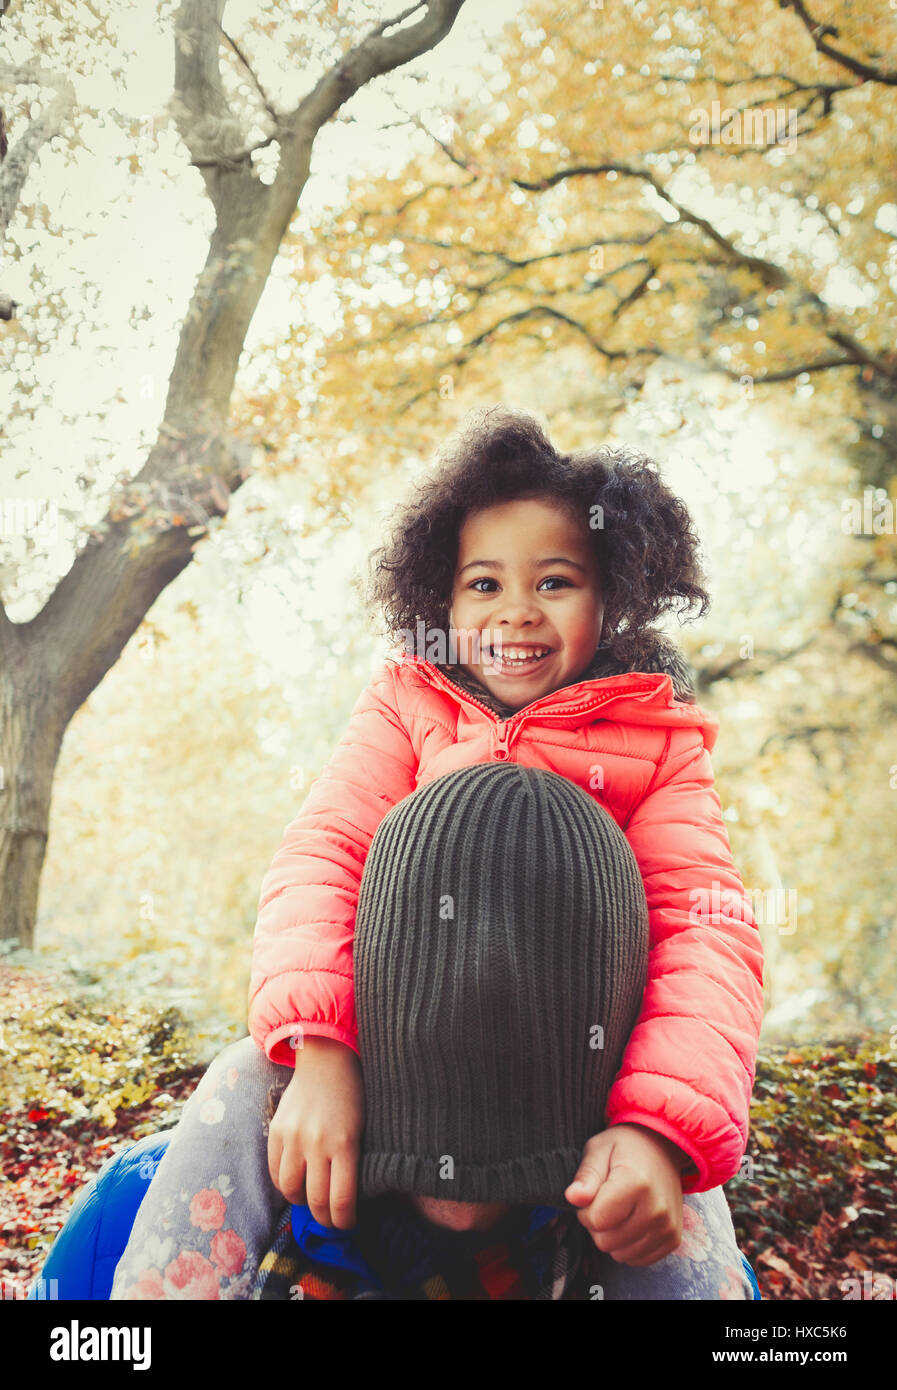 Portrait smiling daughter pulling stocking cap over fathers head in autumn  park 09c87cd05f8